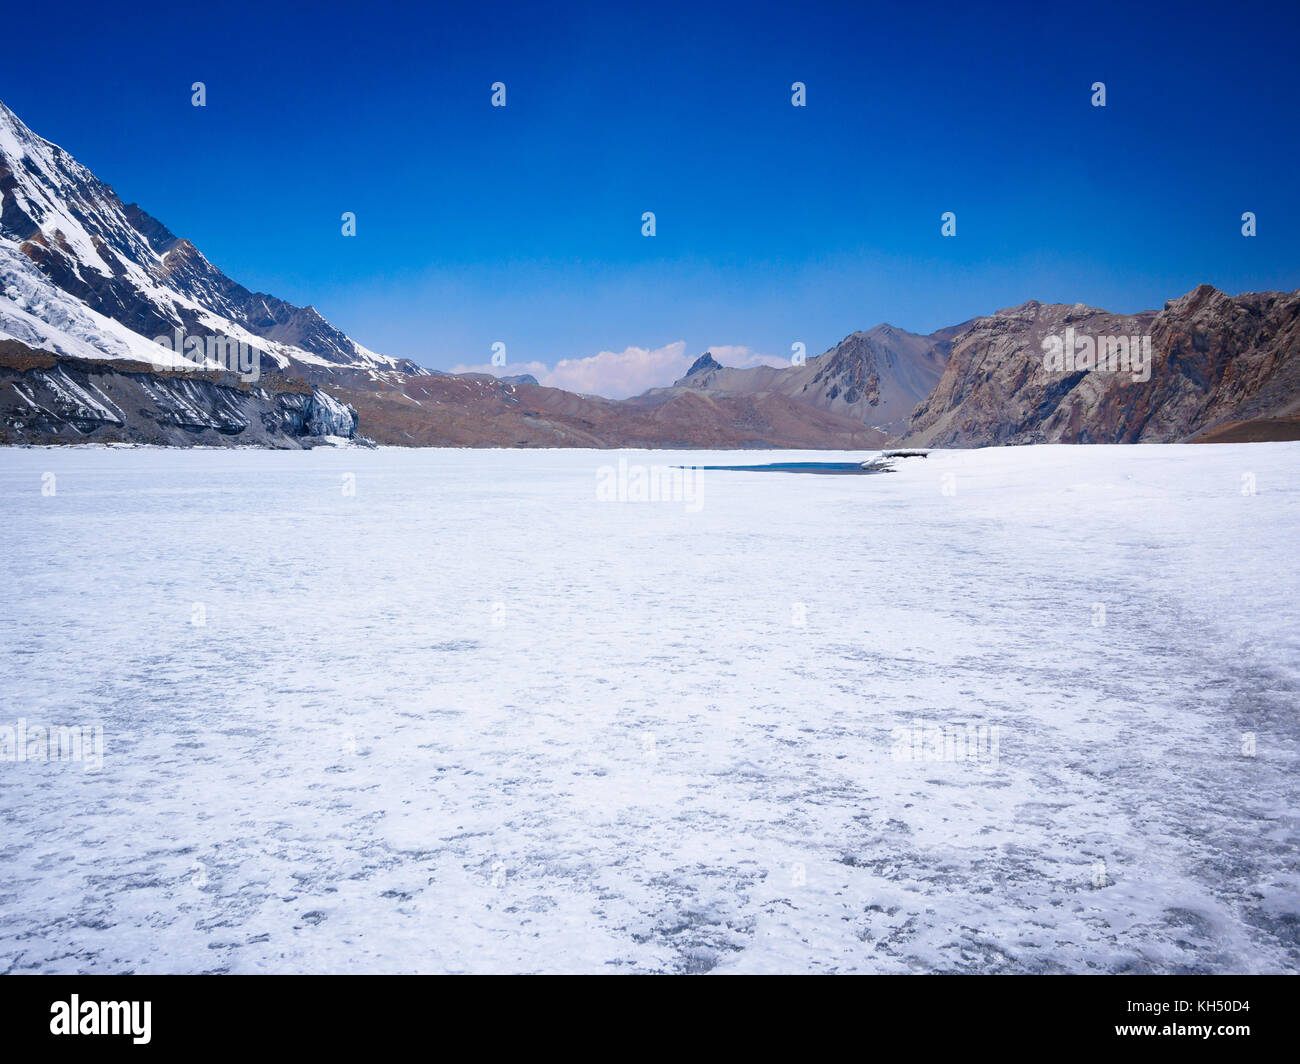 White frozen expanse of Tilicho Lake in the Annapurna Himalayas, Nepal - Stock Image